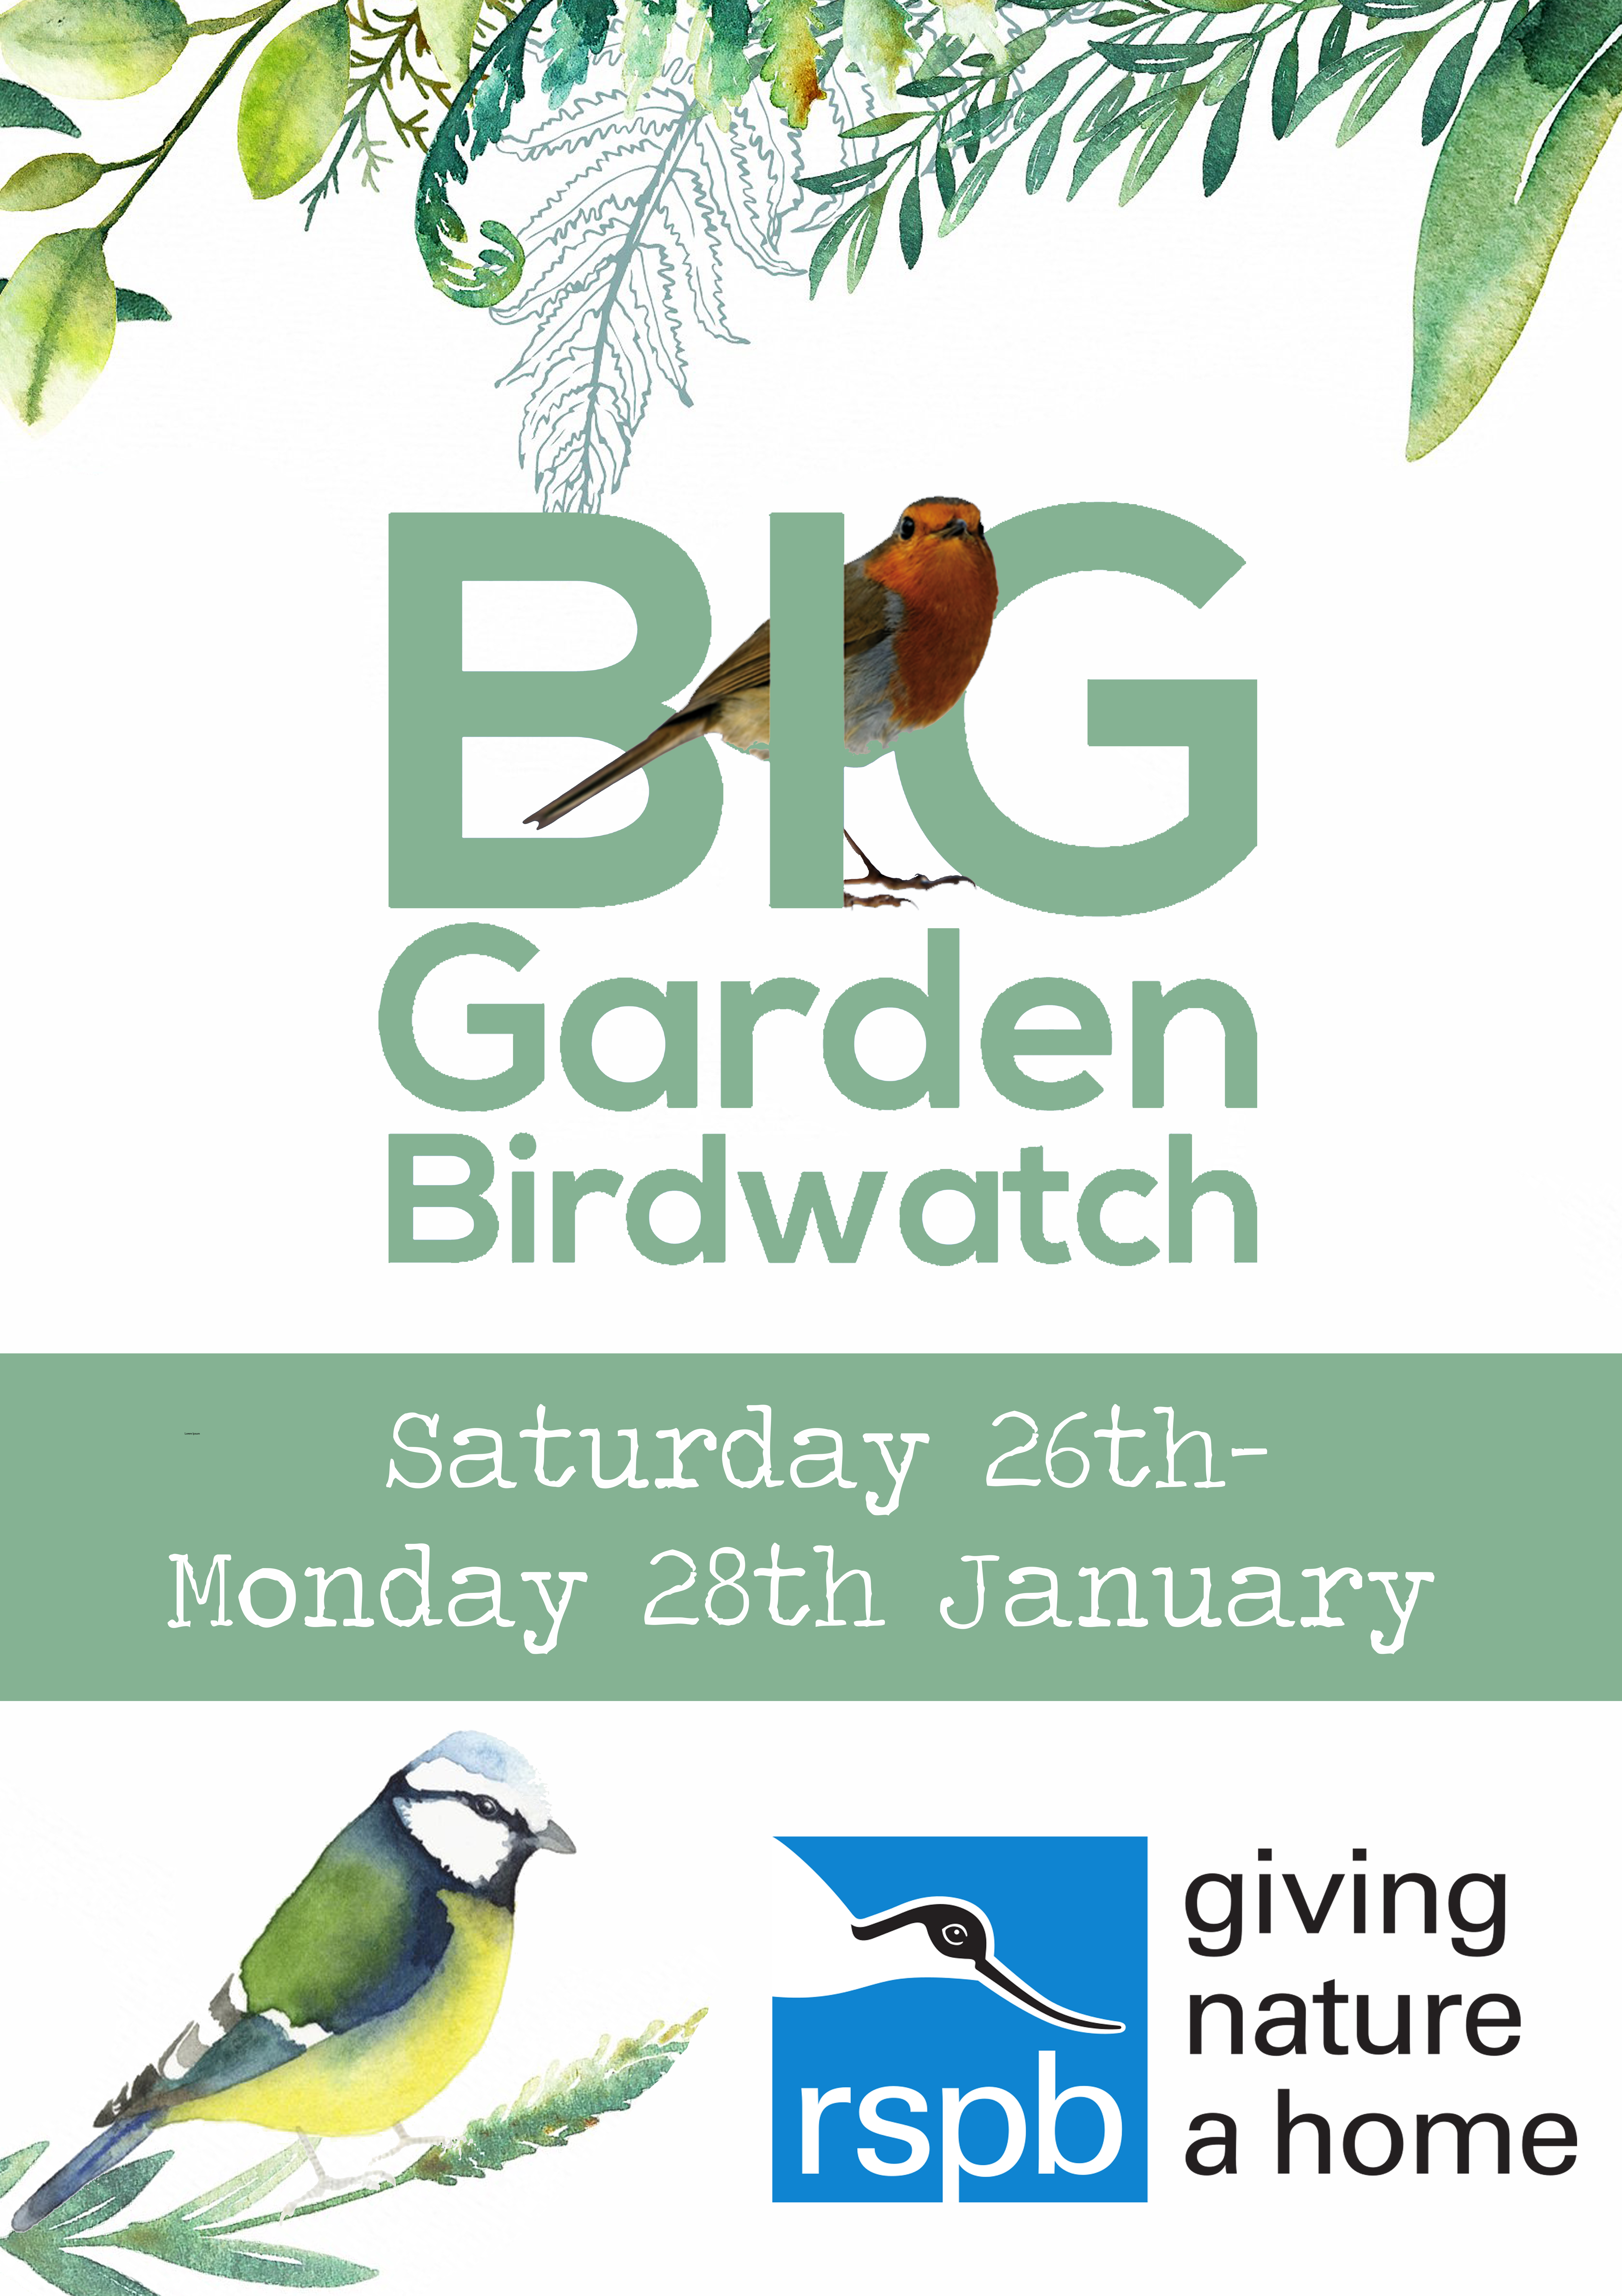 bird garden birdwatch event.jpg